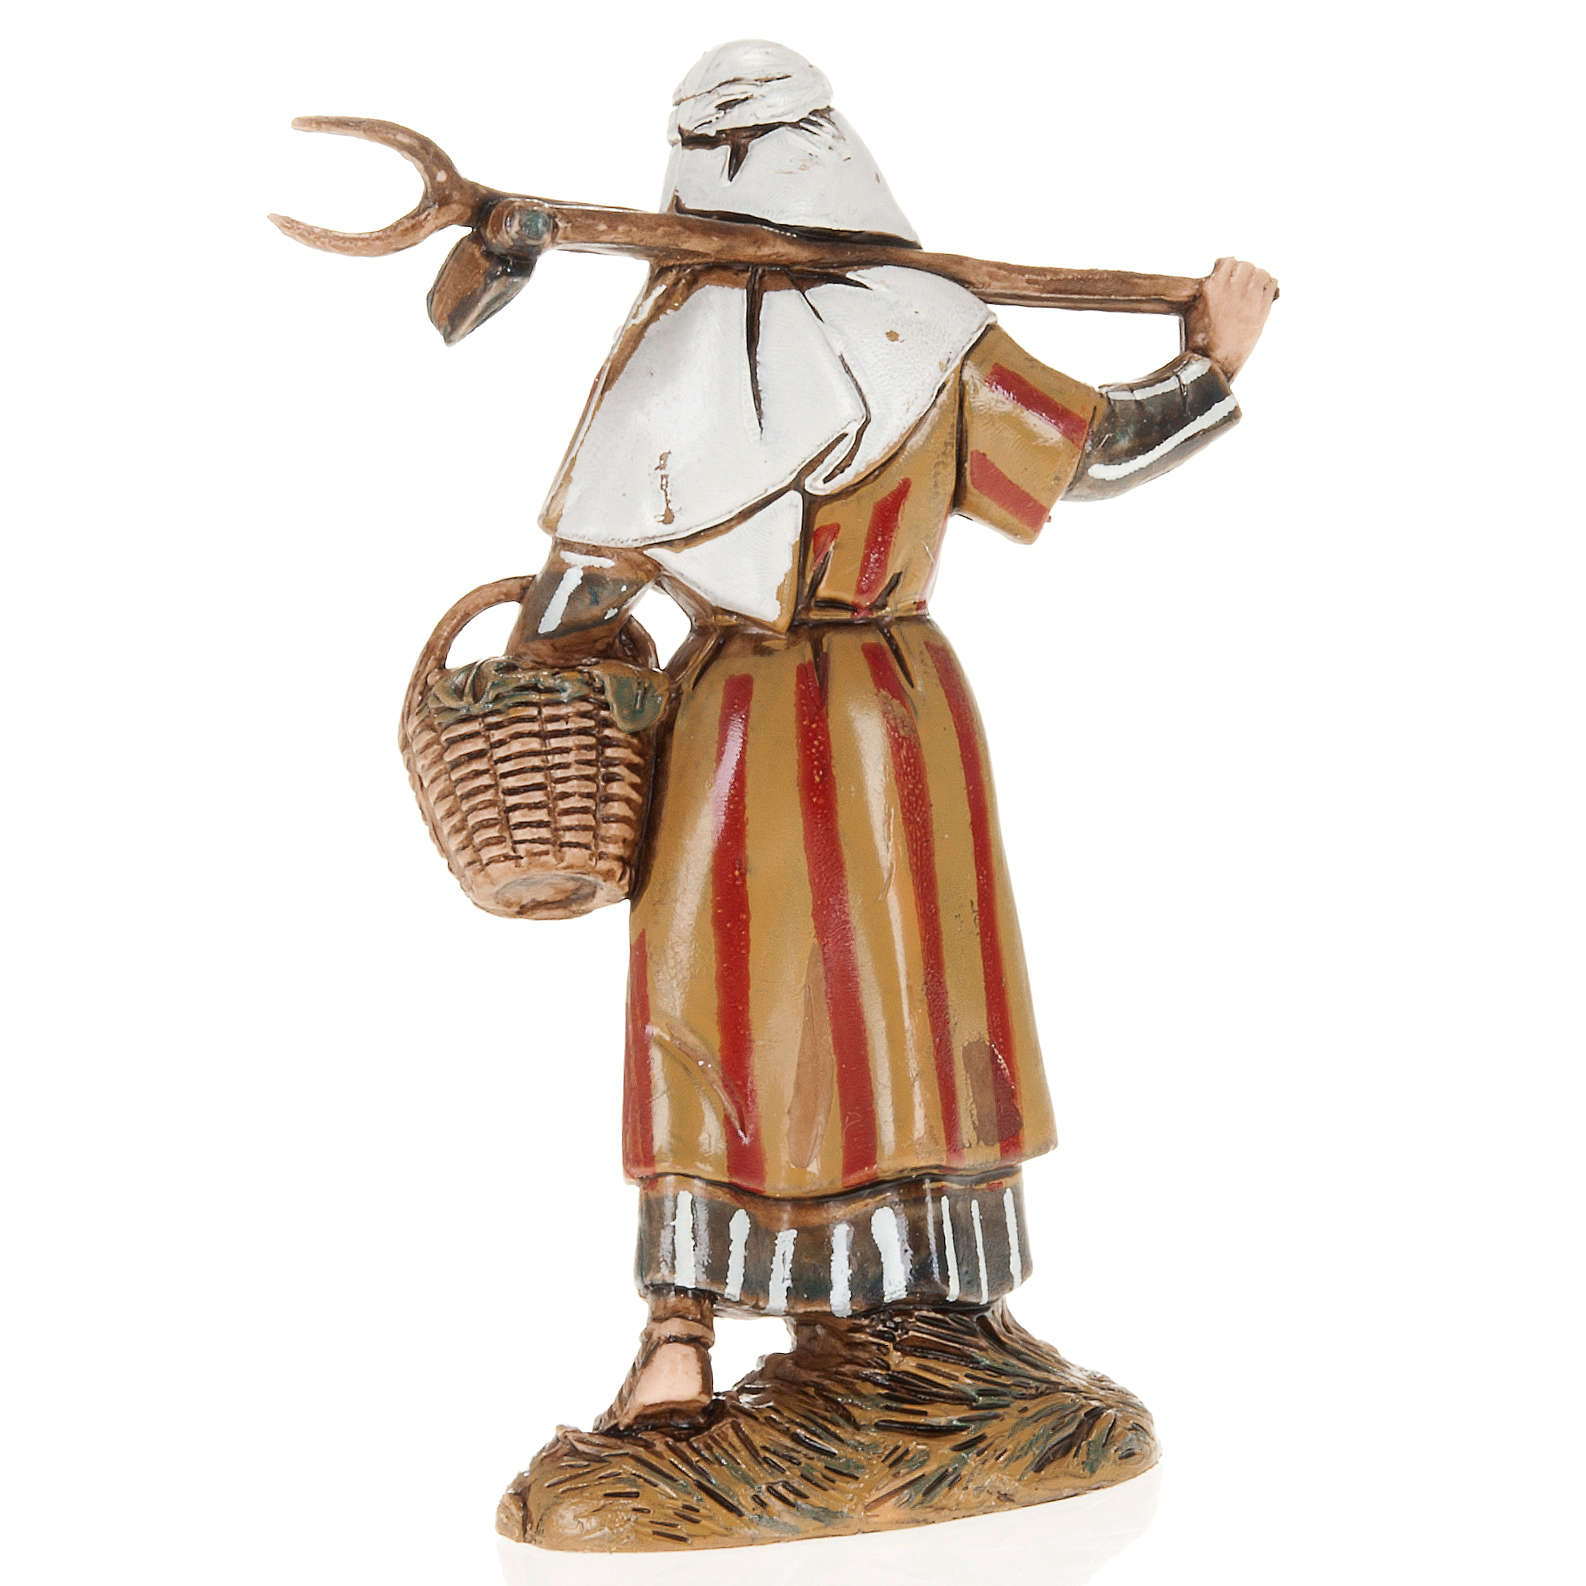 Moranduzzo Nativity Scene woman holding pitchfork figurine 10cm 3